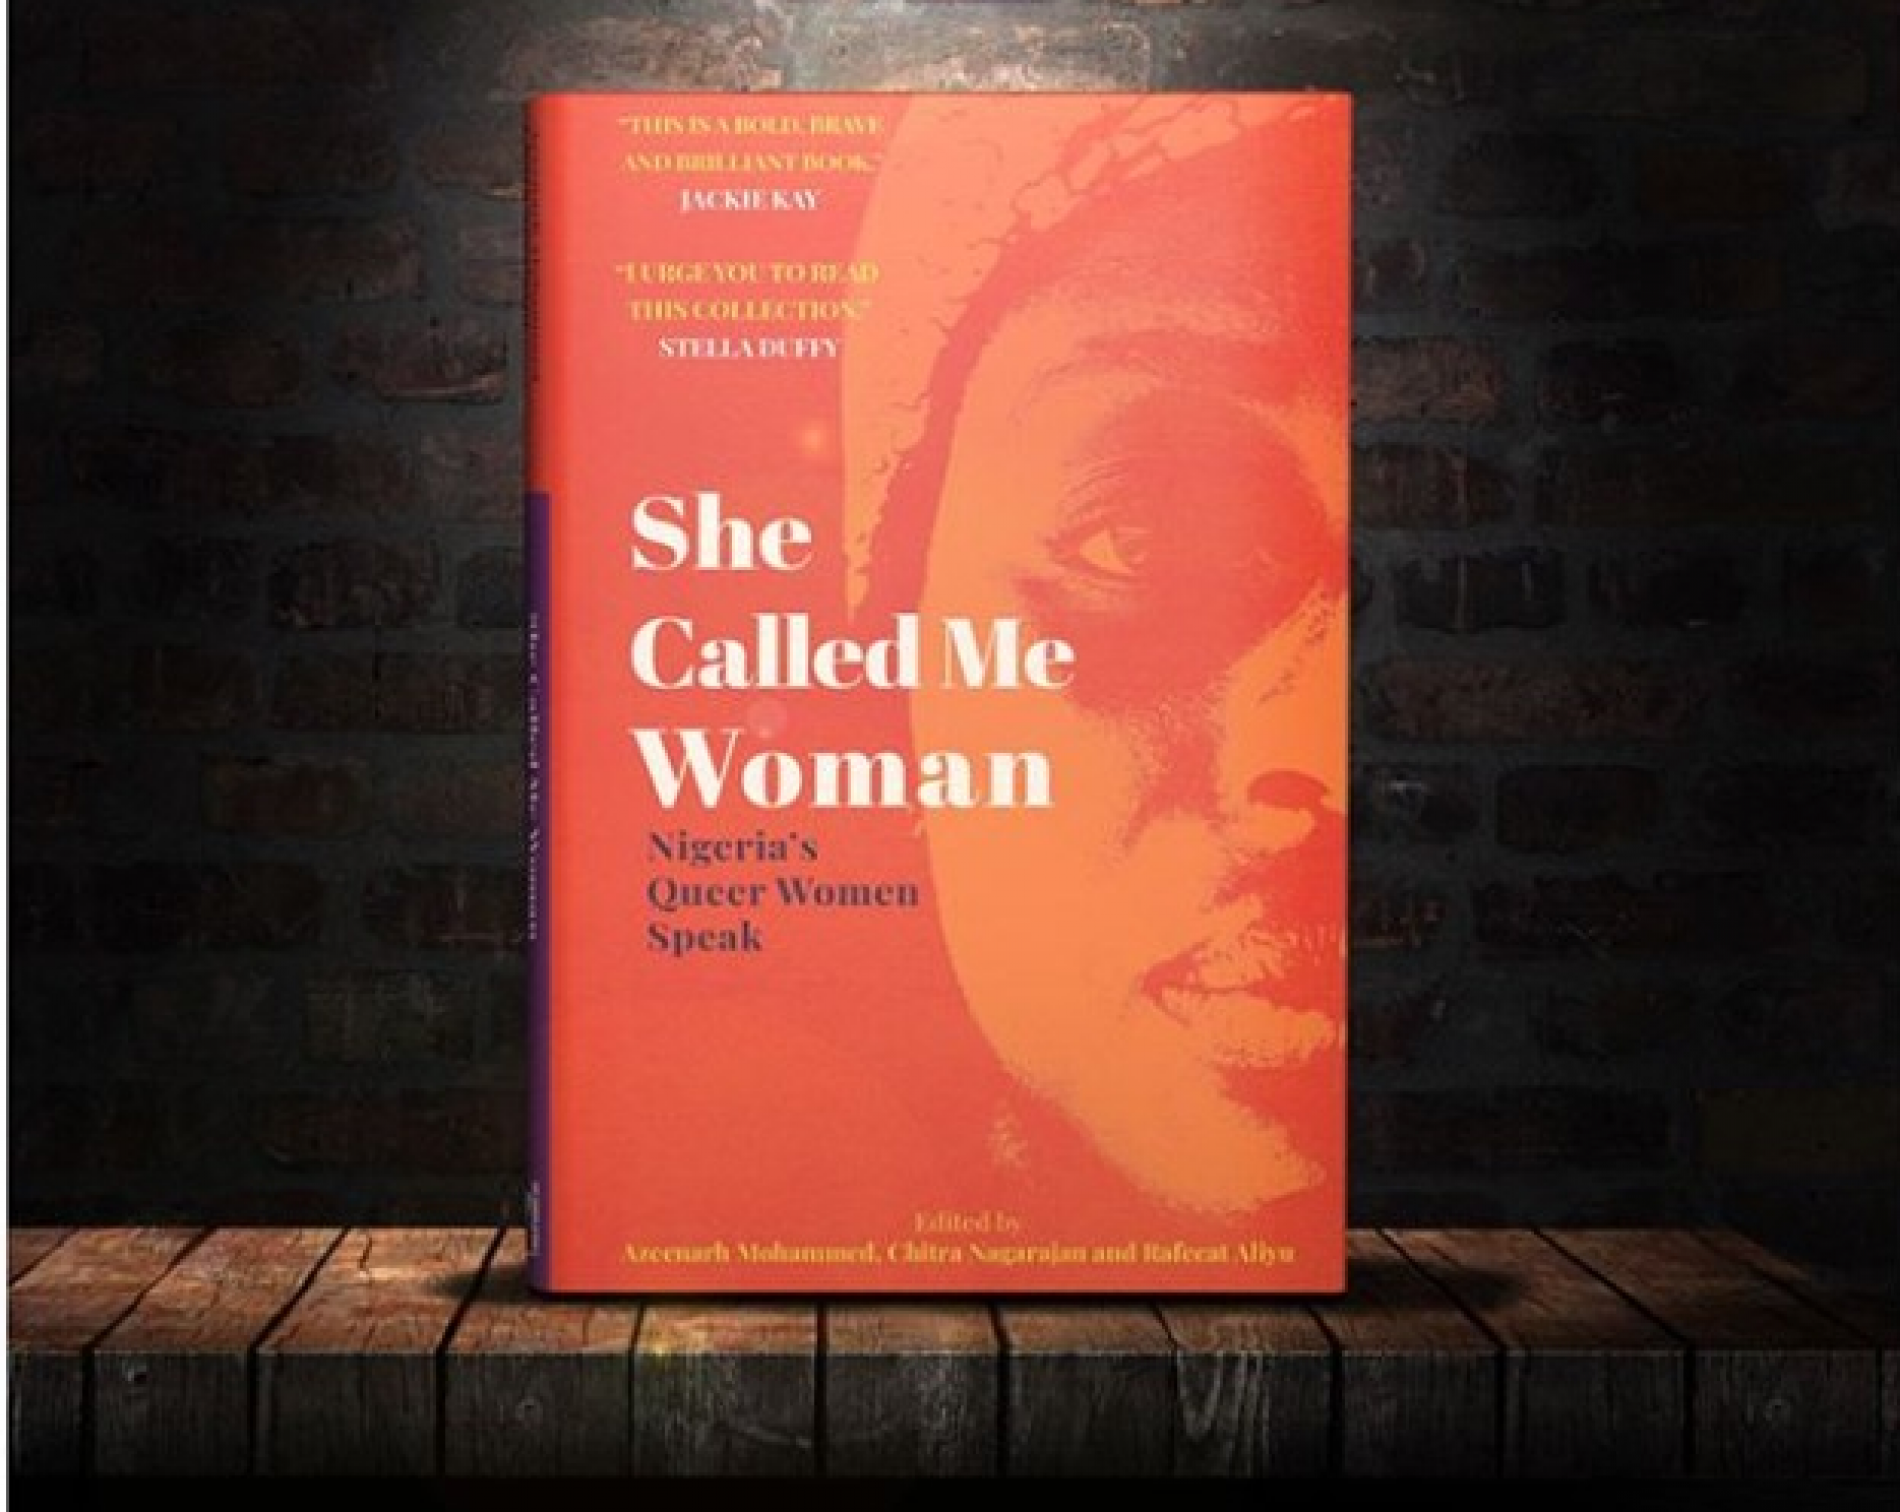 Lessons Learned From 'She Called Me Woman' (Entry 13)